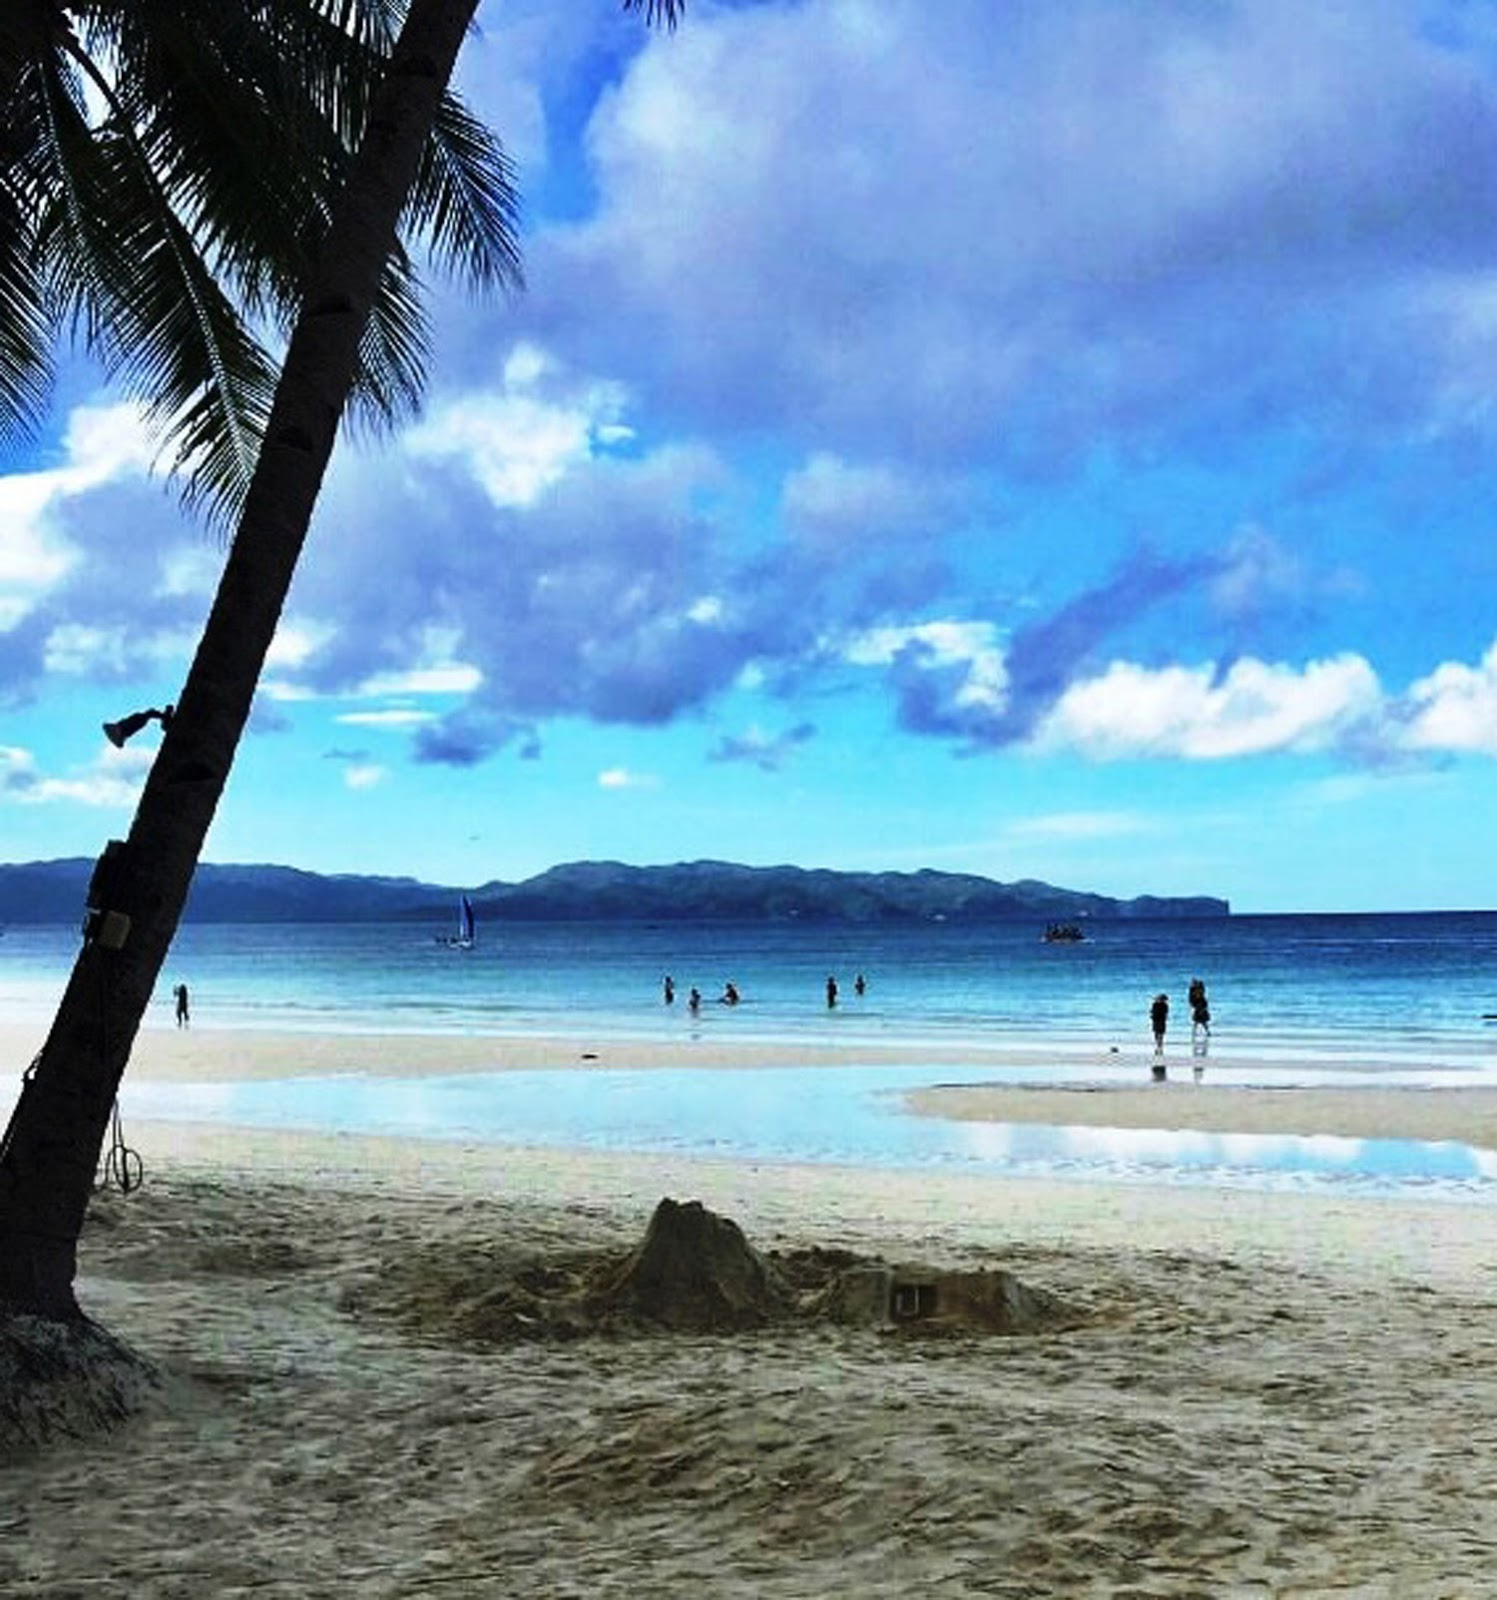 Boracay Beach: The Food Alphabet And More: How To Enjoy Boracay During